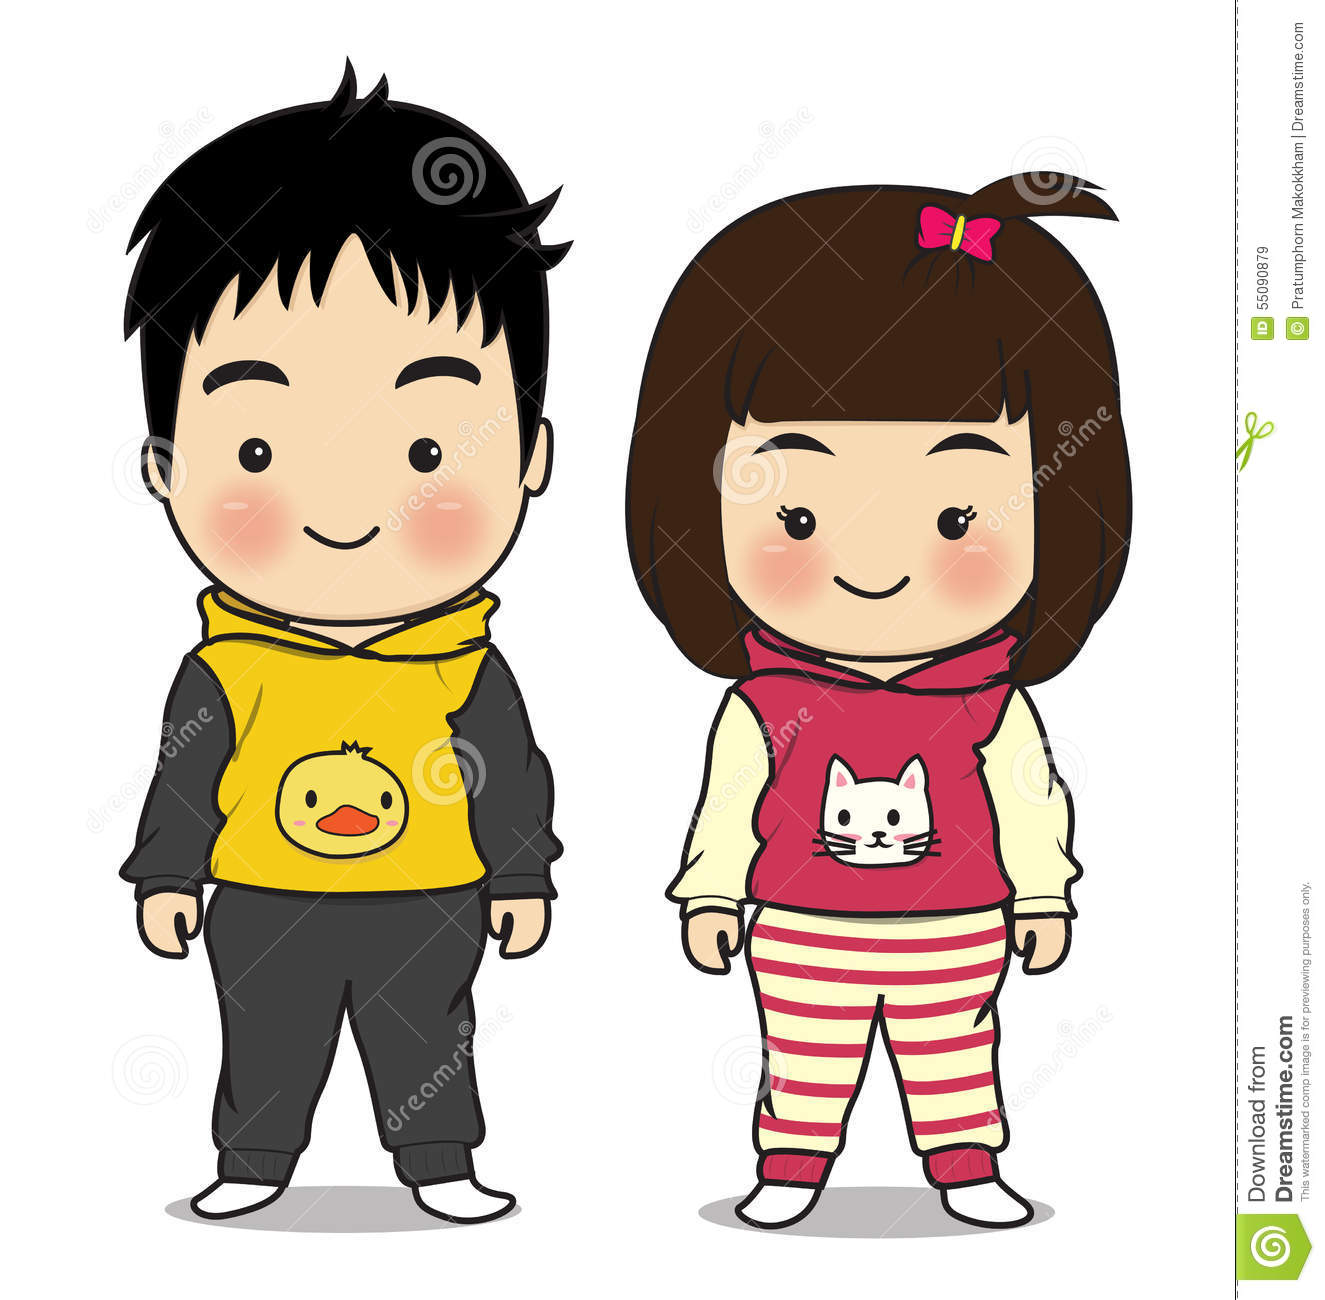 Cute Boy Character Design : Boy and girl character cartoon stock vector image